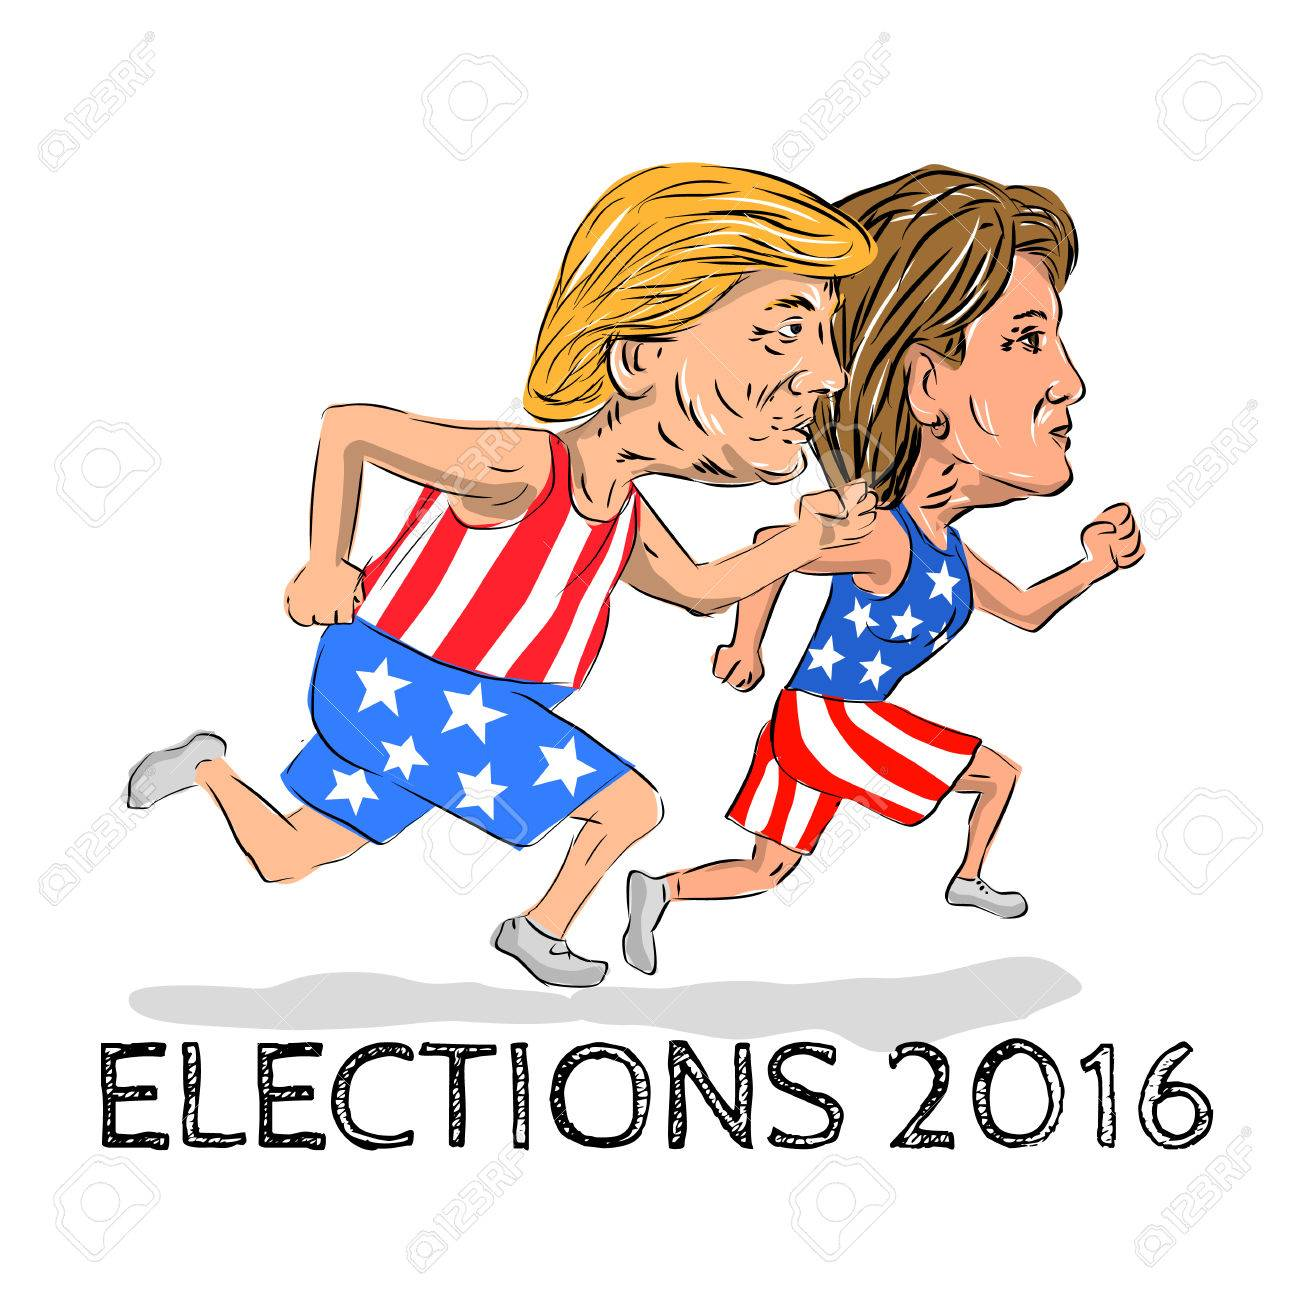 Illustration showing Republican Donald Trump and Democrat Hillary Clinton run running race for president in Election 2016 done in cartoon style. Stock Photo - 60954351